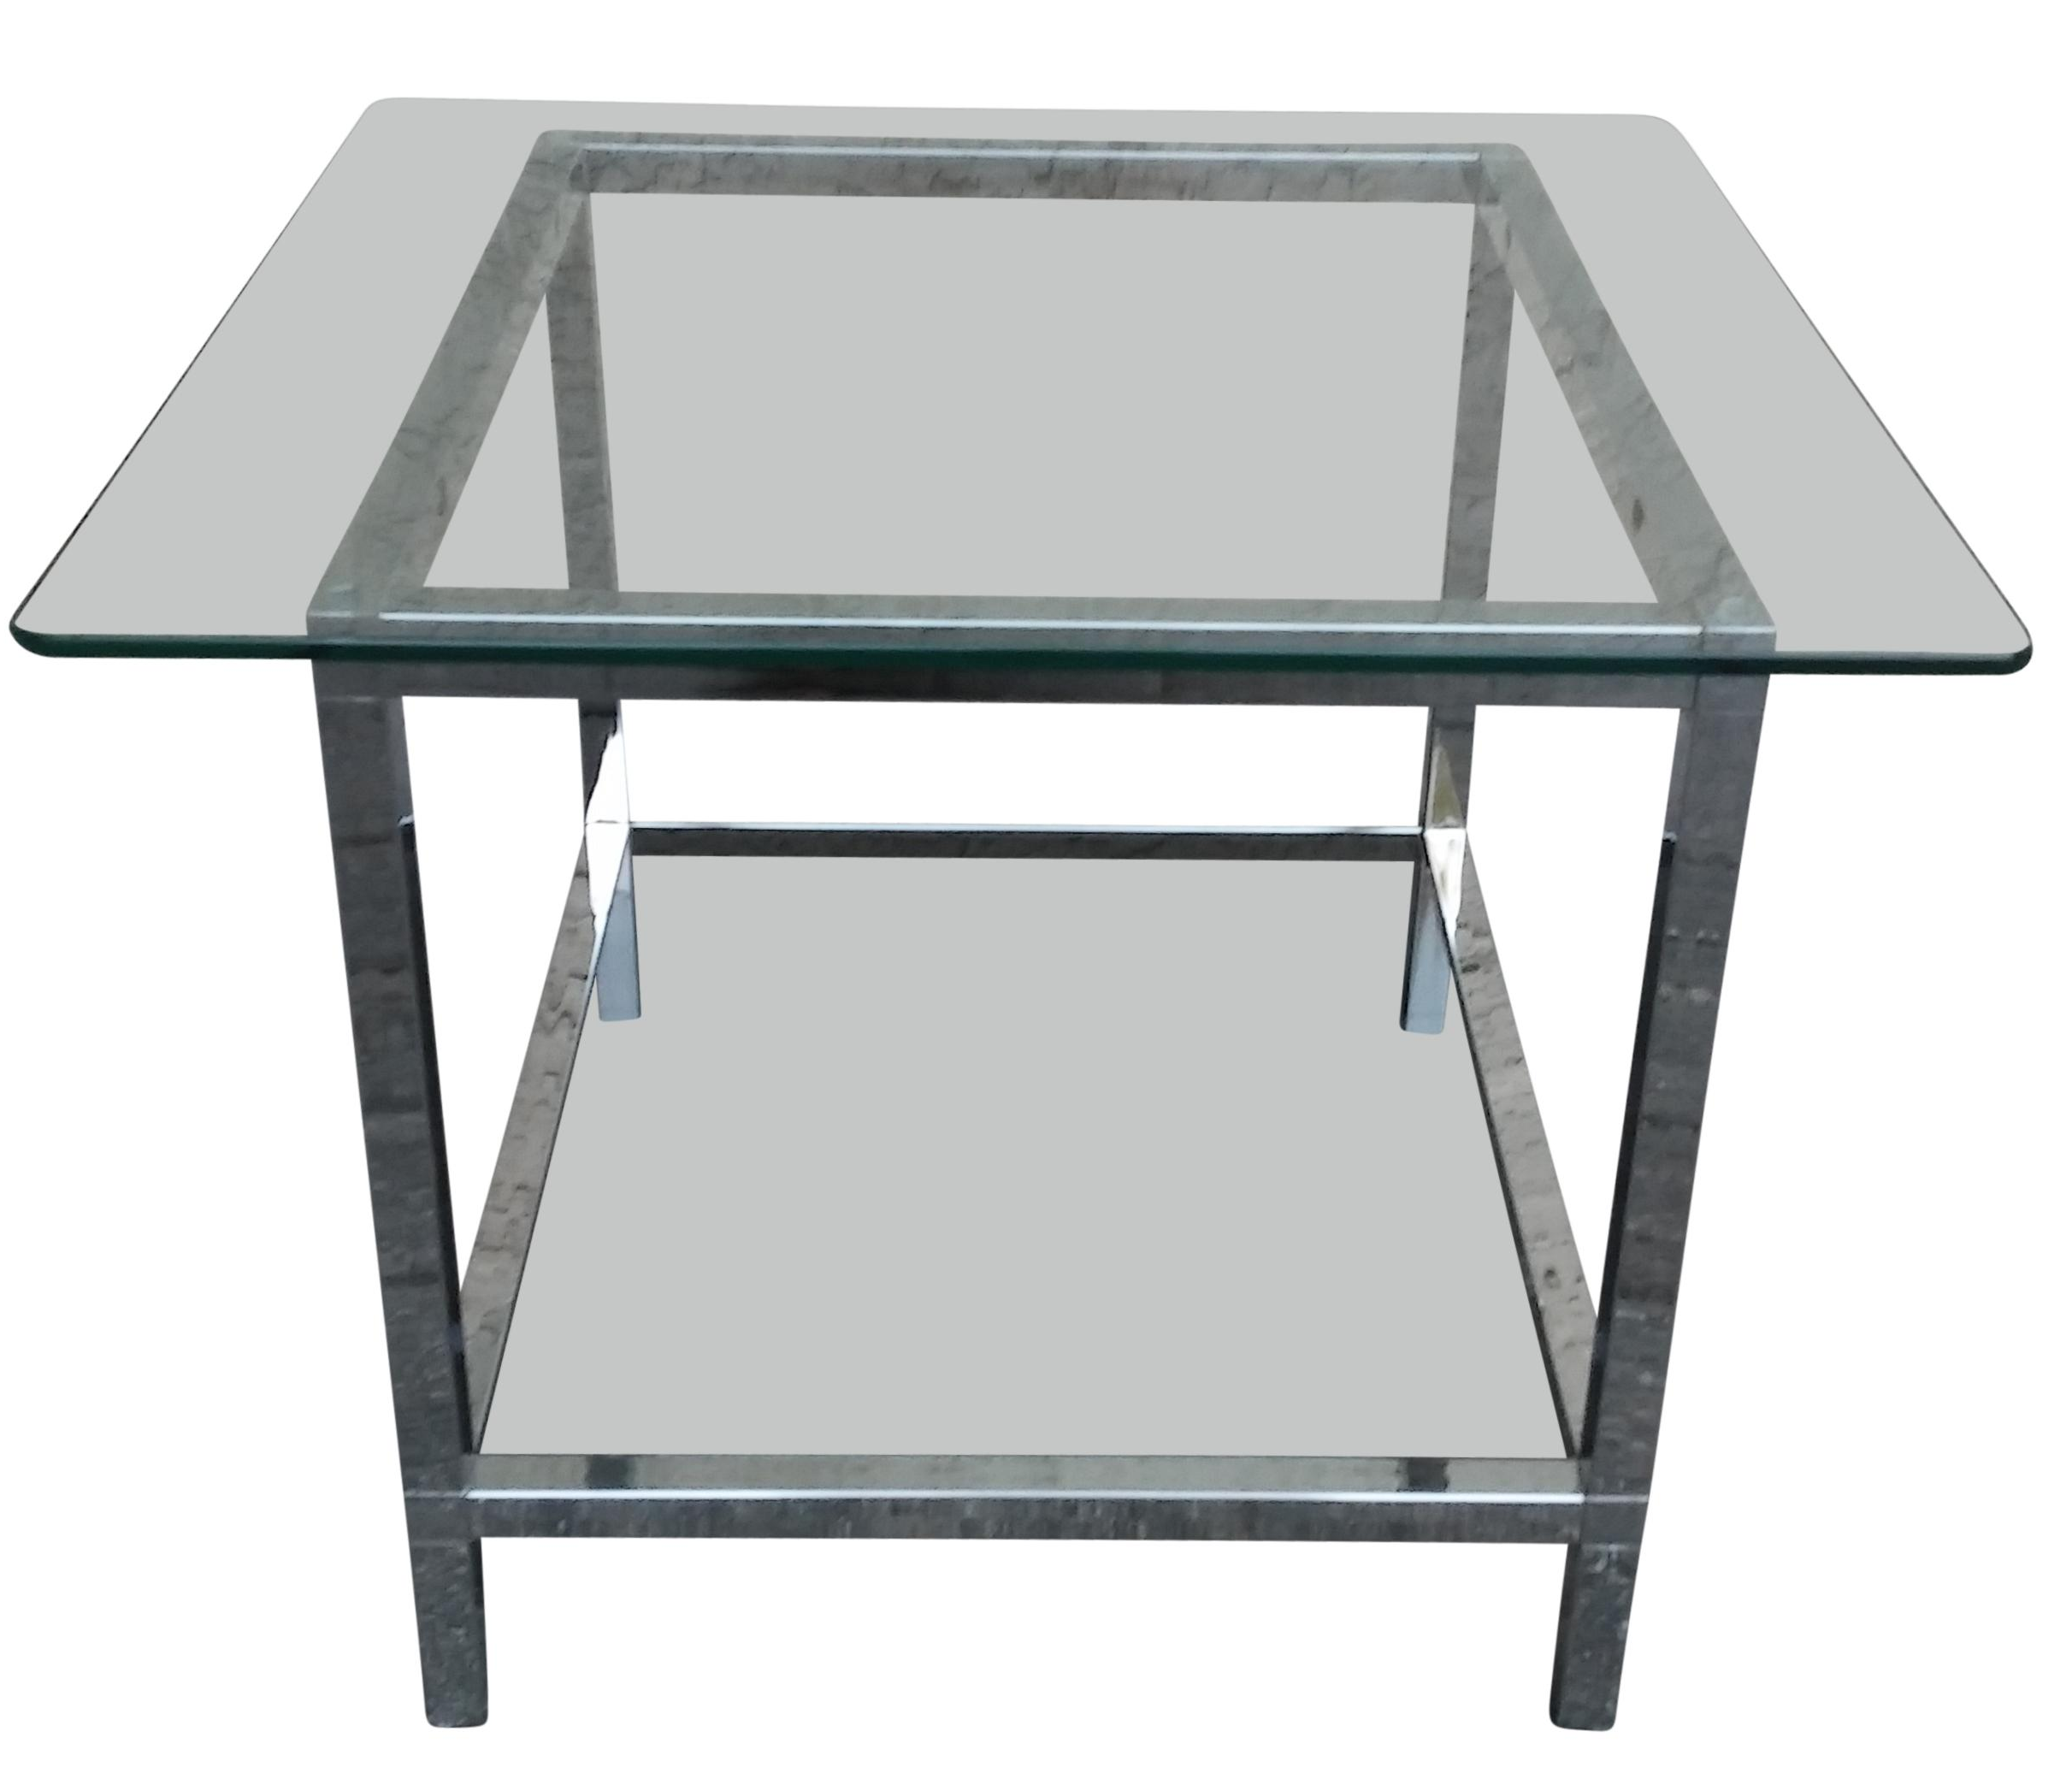 Mies van der rohe style side table chairish for 0co om cca 9 source table